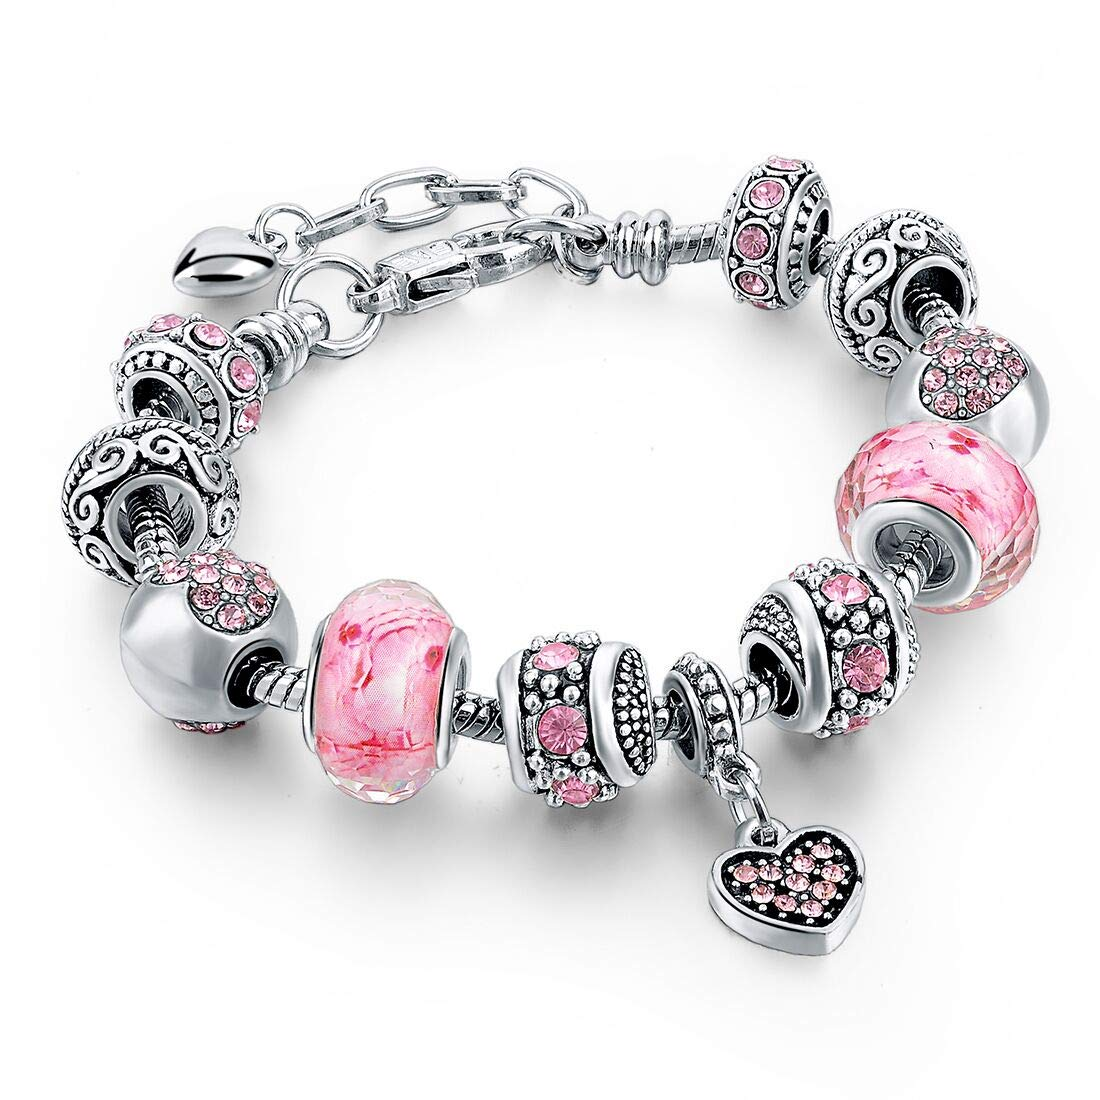 Long Way Silver Tone Chain Pink Crystal Love Heart Bead Glass Charm Bracelet with Extender 7.5''+1.5'' by Long Way